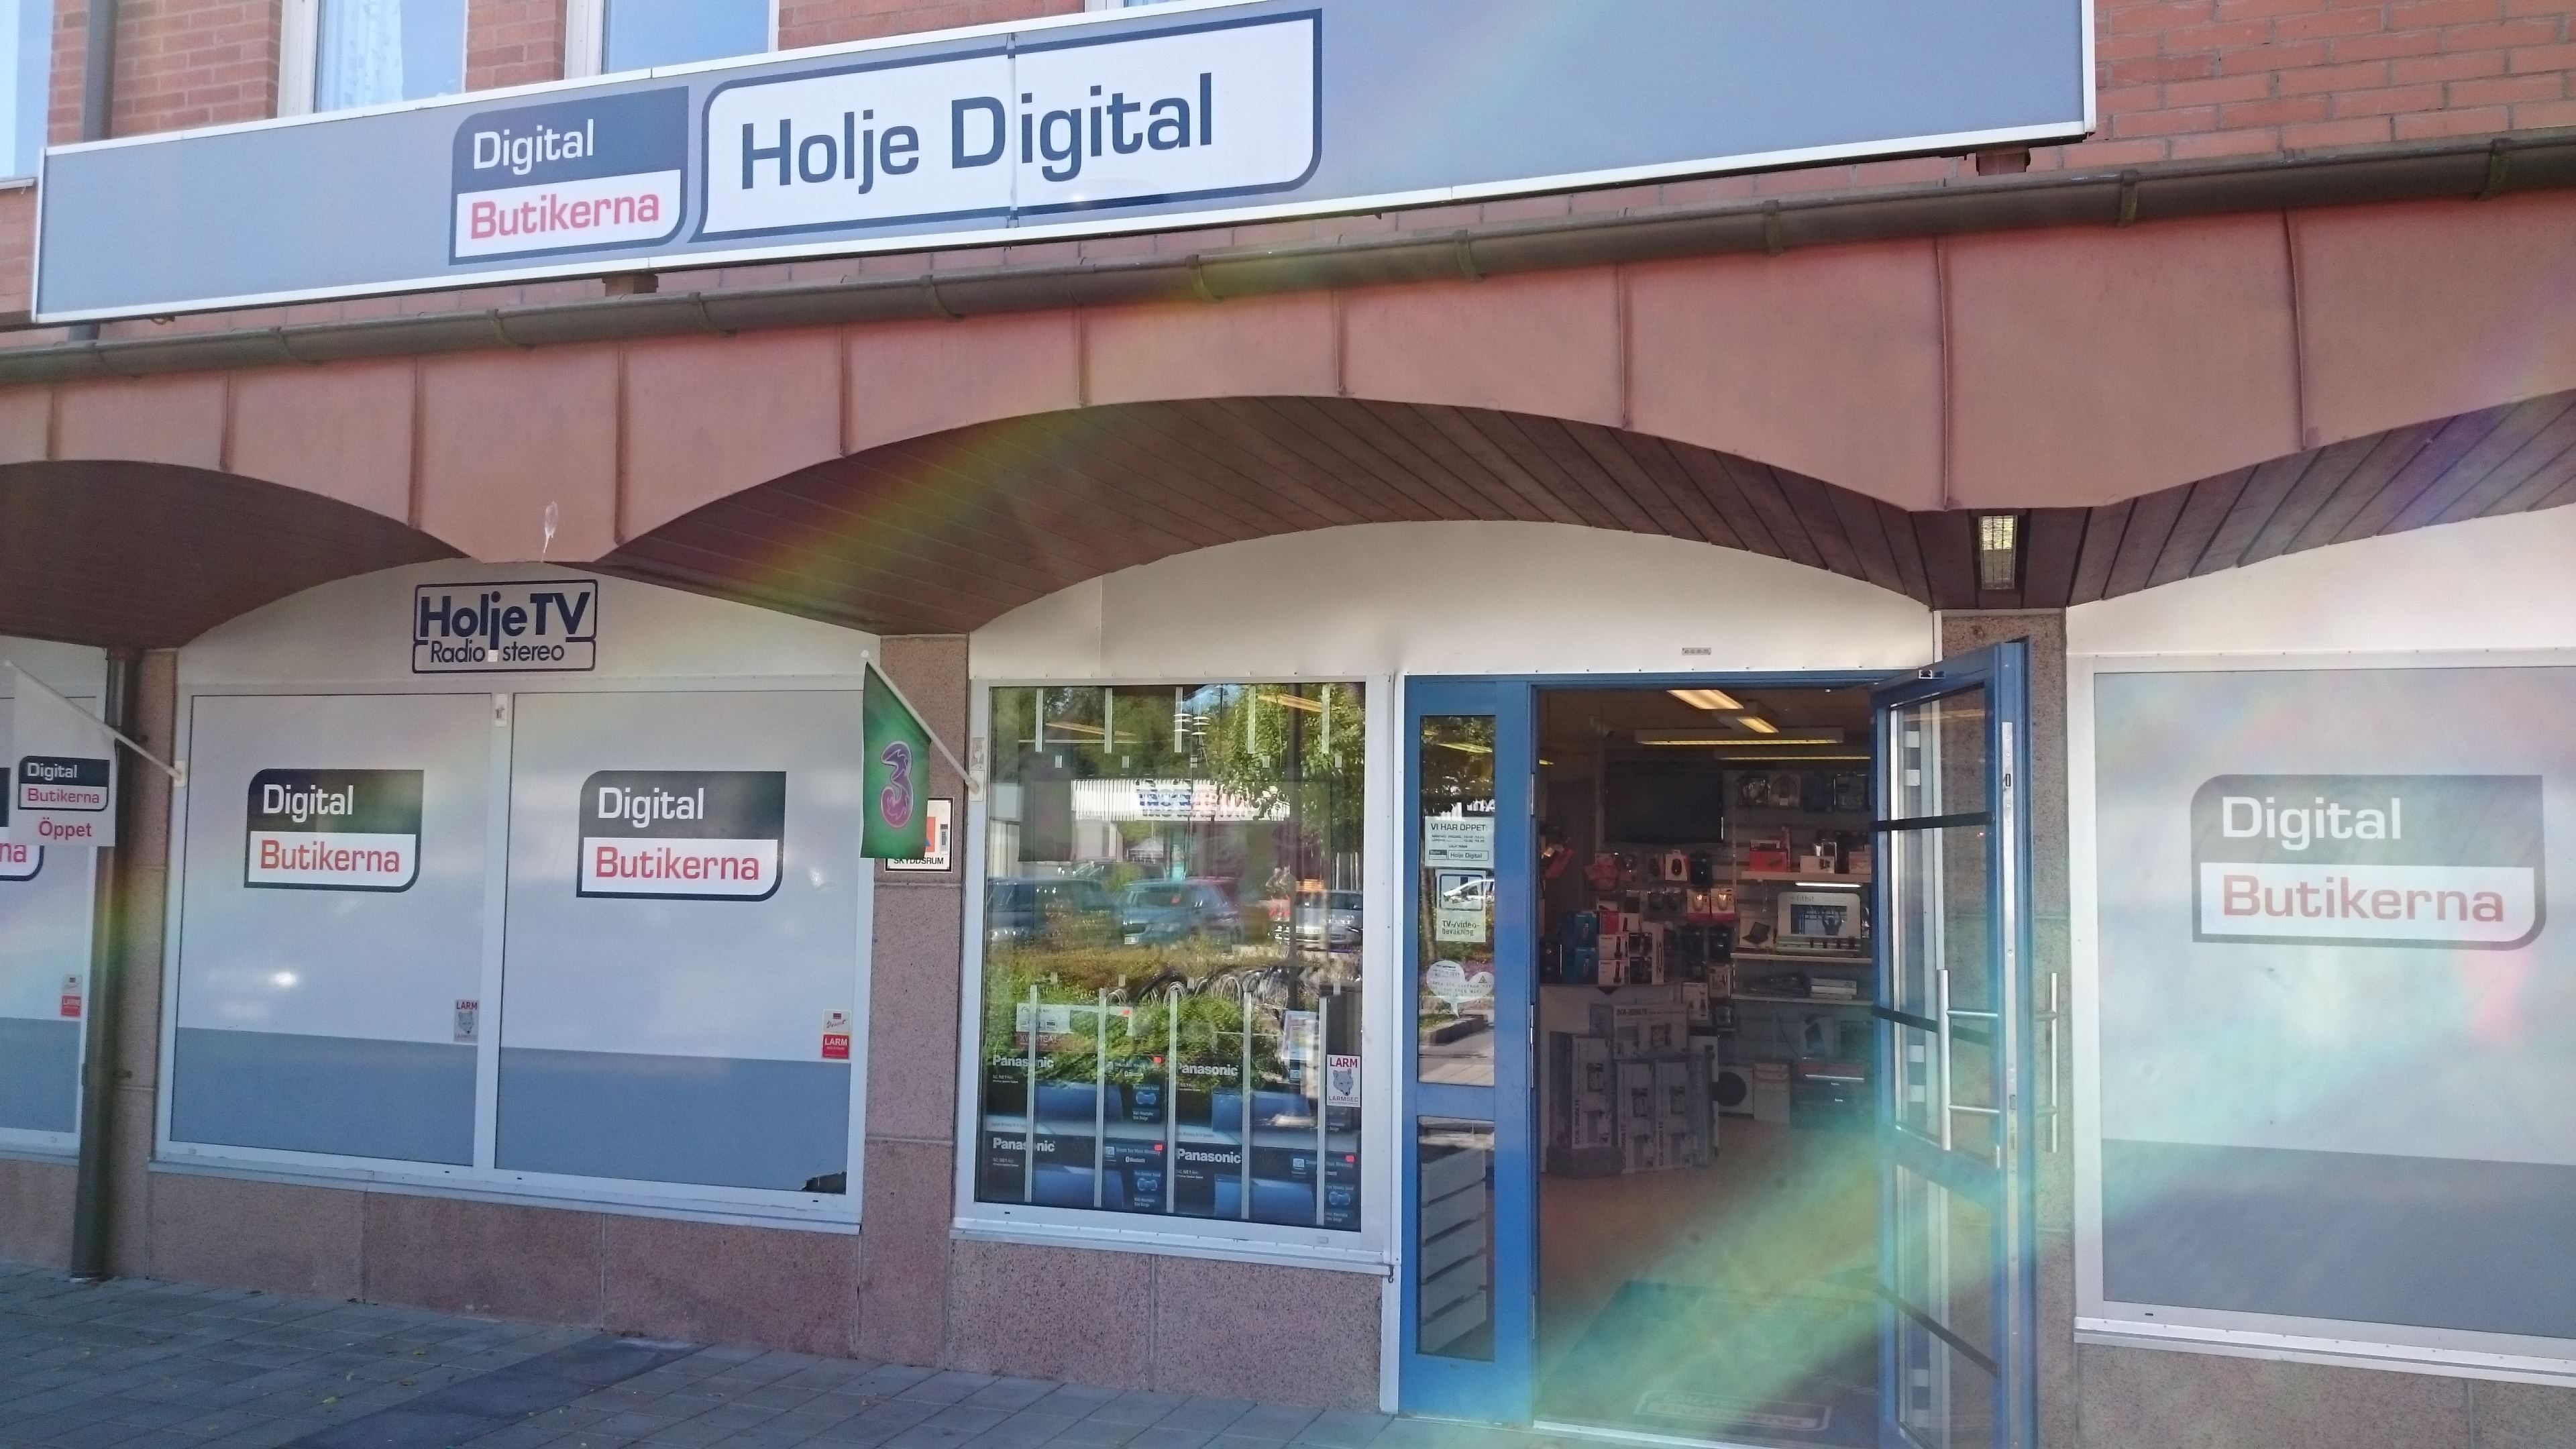 HOLJE DIGITAL